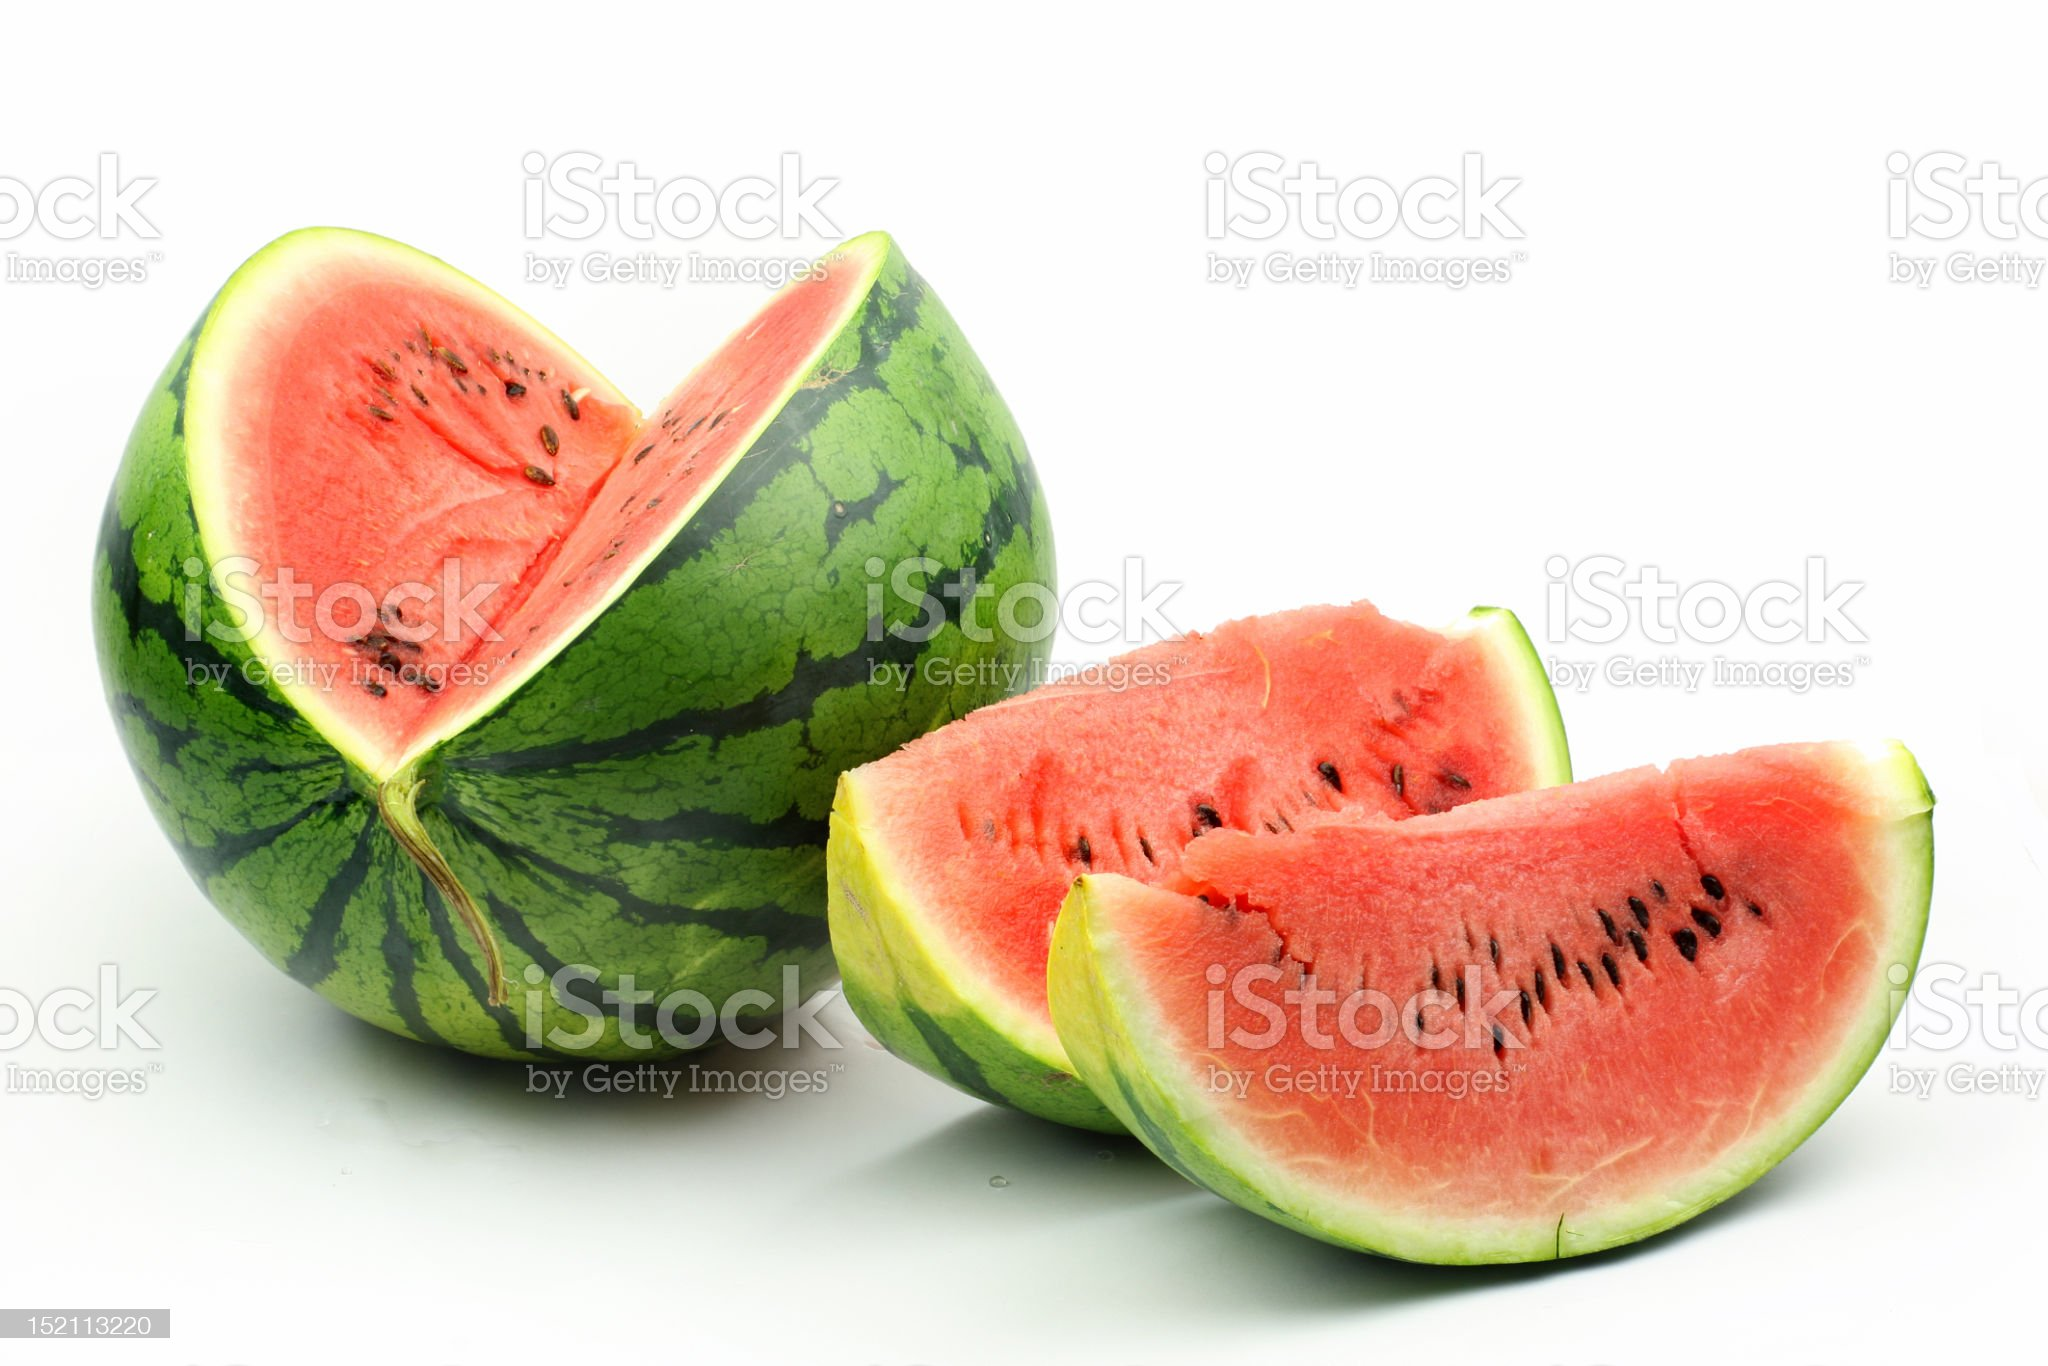 A sliced juicy and fresh watermelon royalty-free stock photo